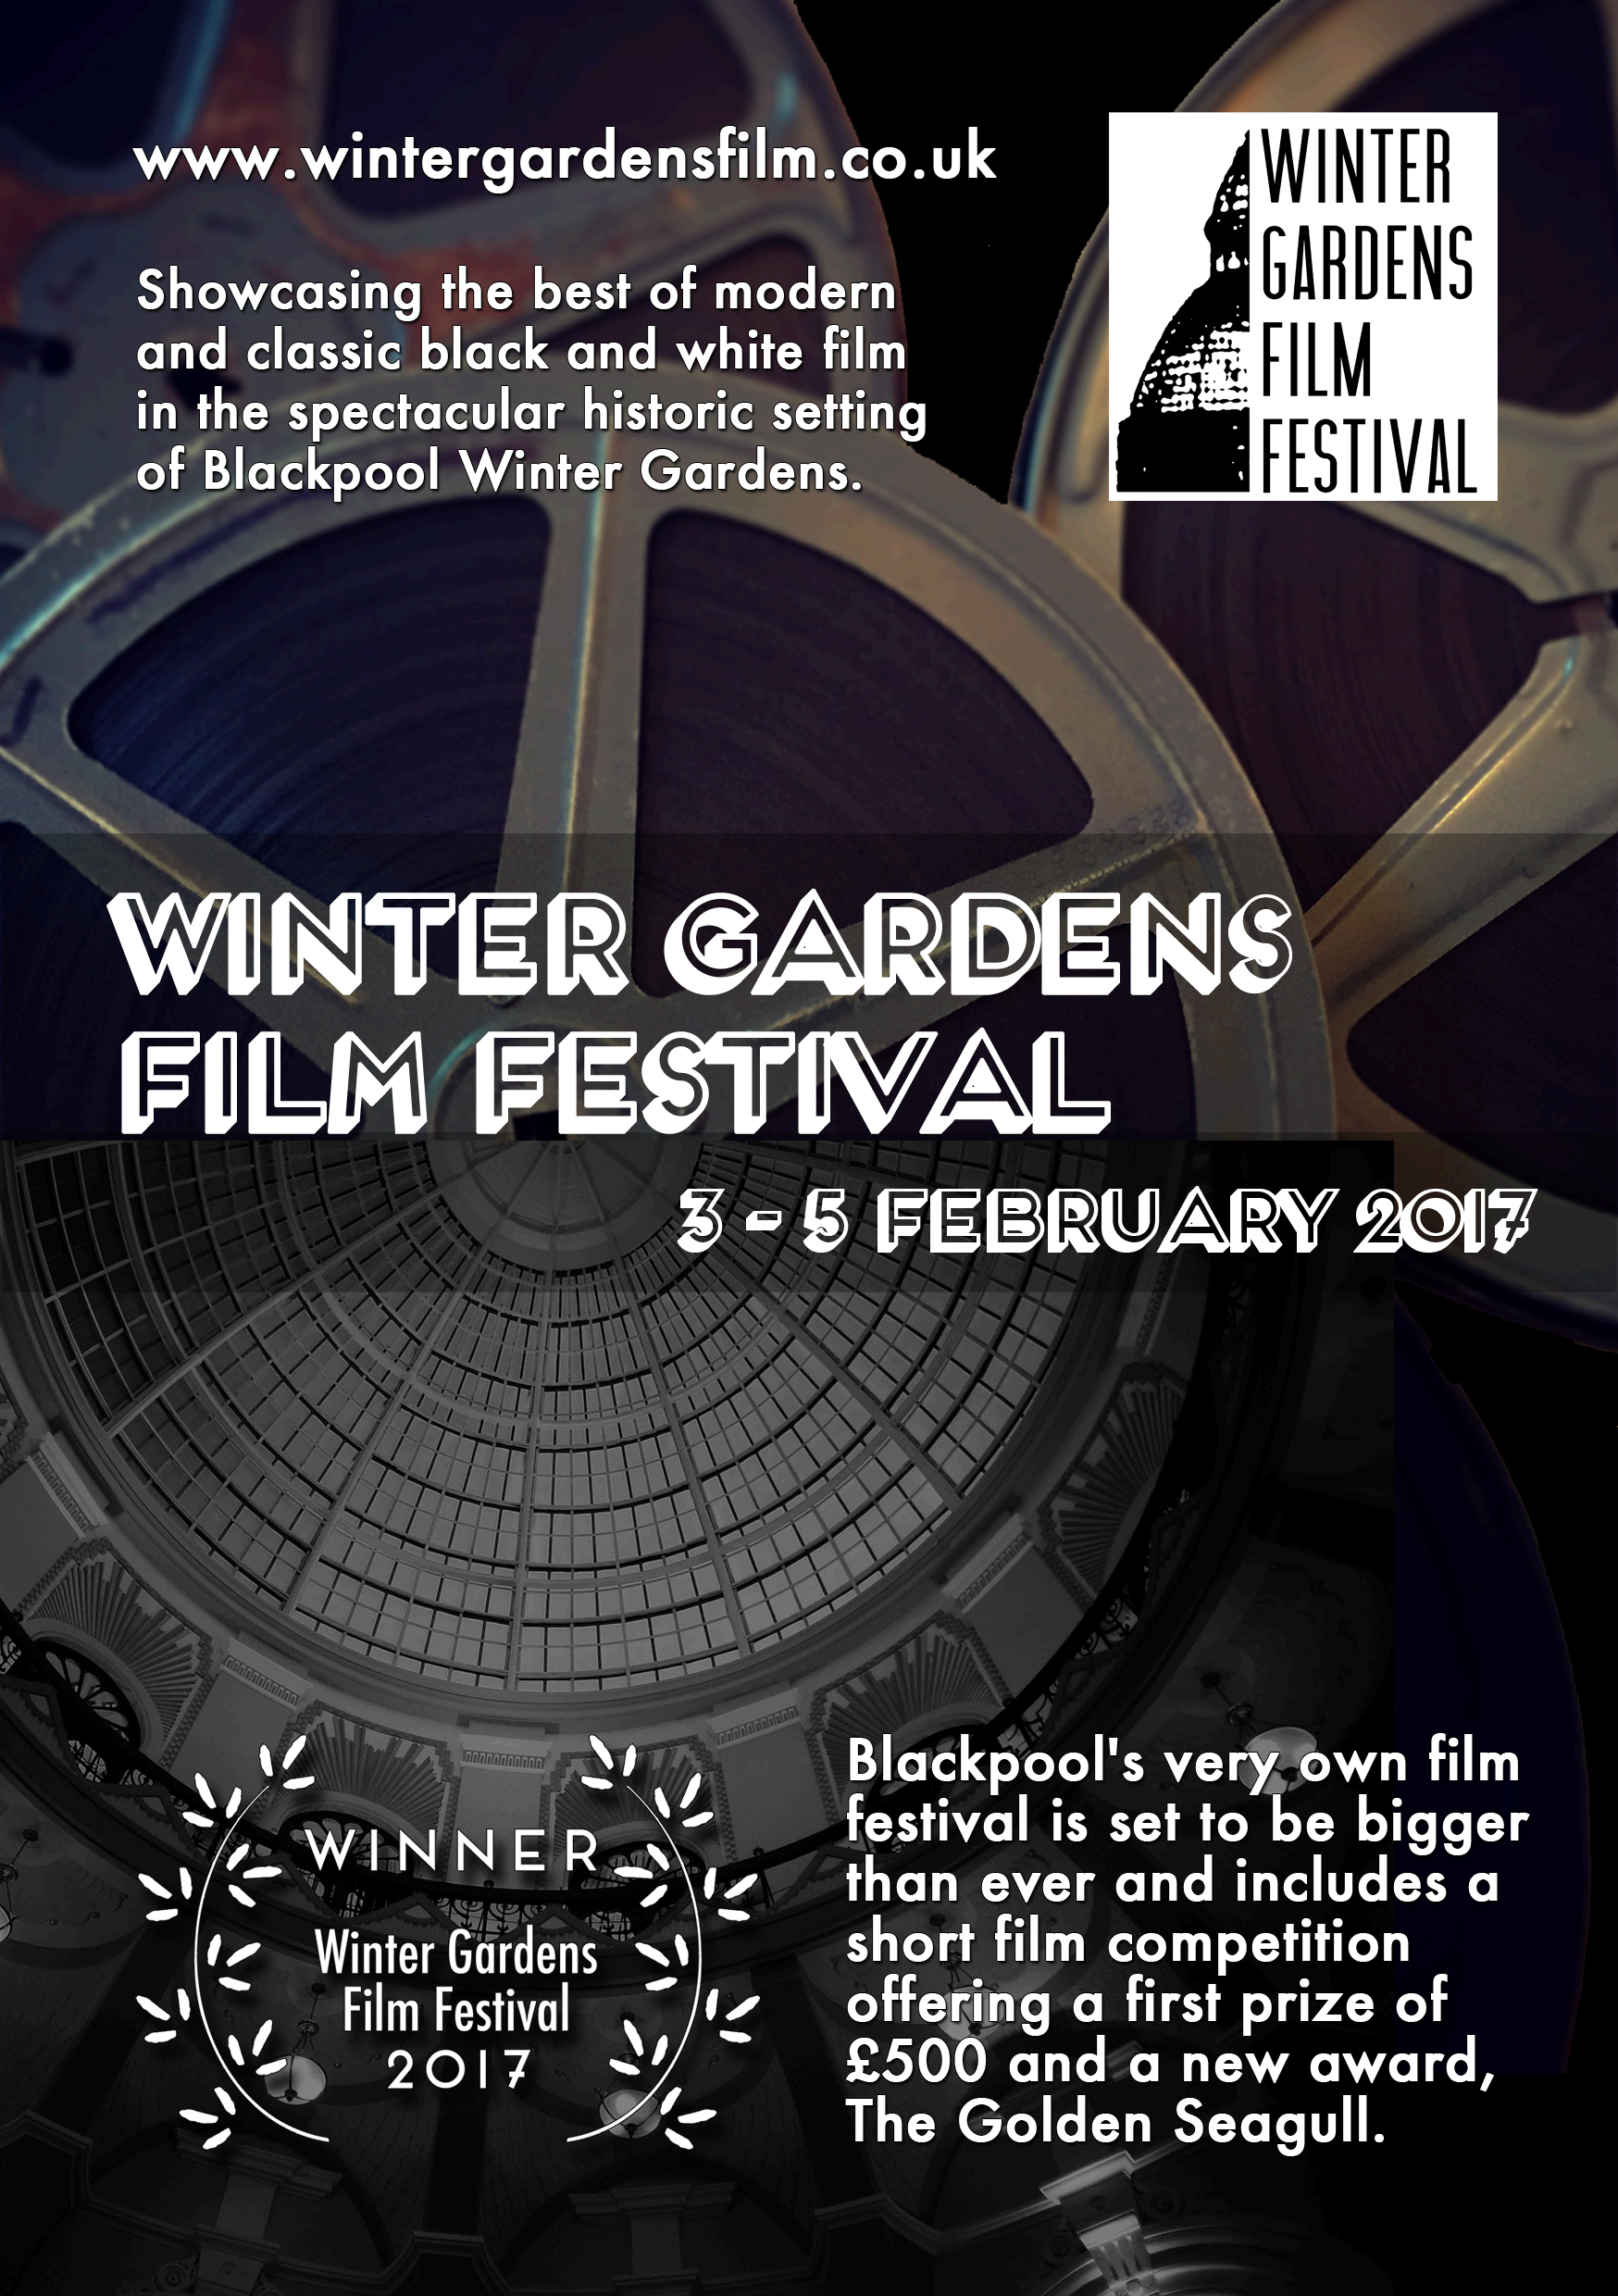 introducing the winter gardens film festival u2013 winter gardens film